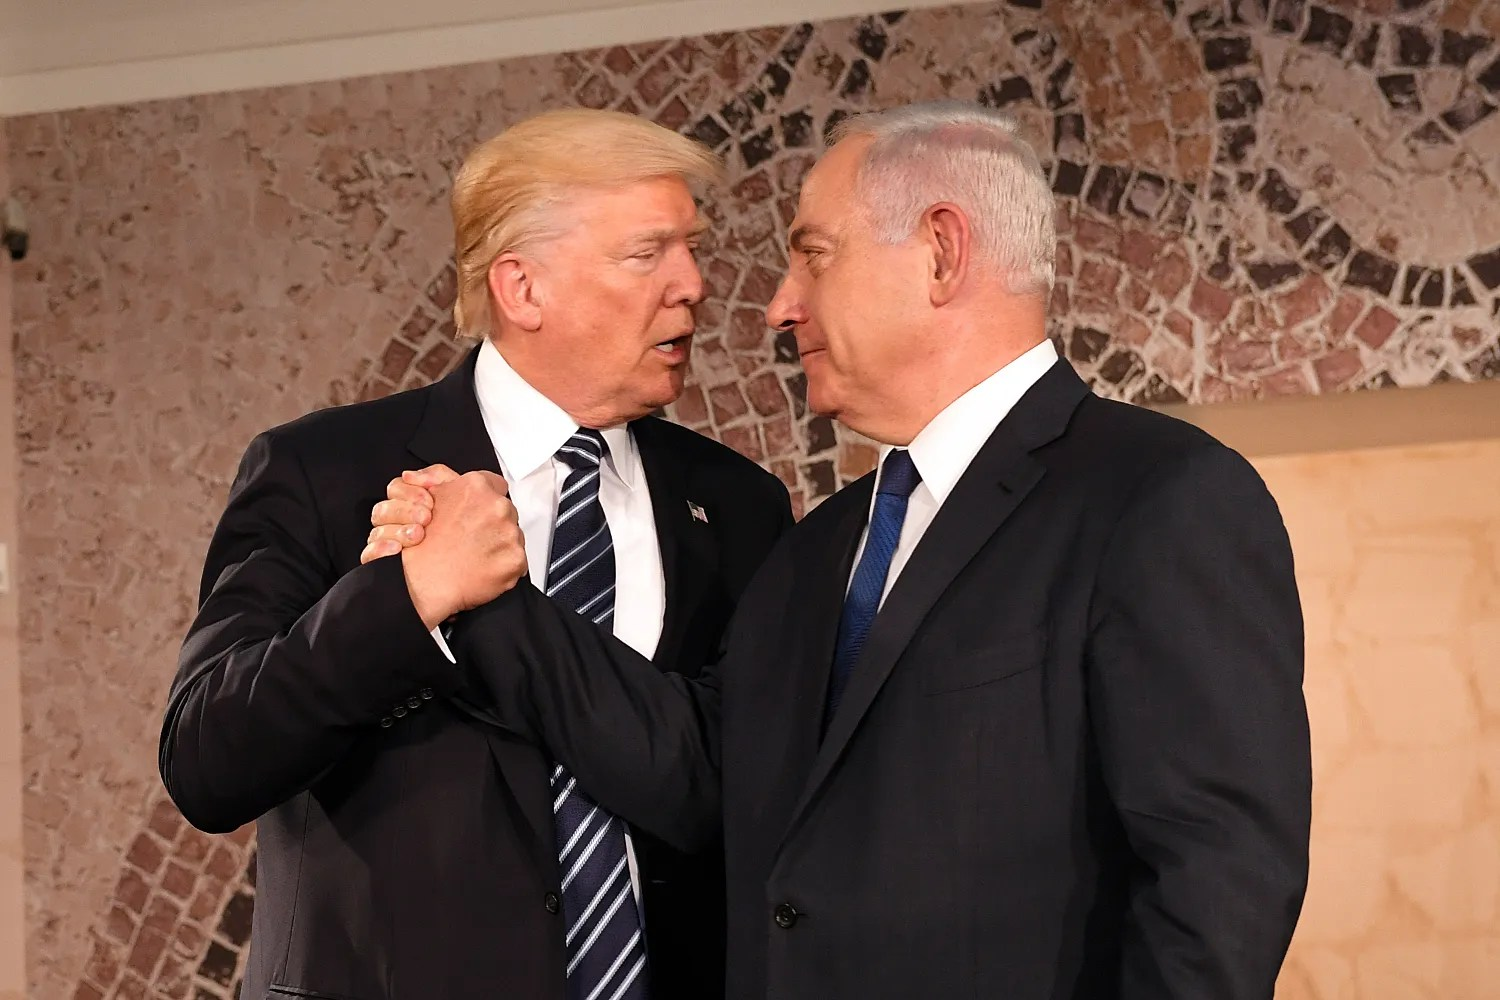 https://i1.wp.com/www.ghigliottina.info/wp-content/uploads/2017/12/President_Trump_at_the_Israel_Museum._Jerusalem_May_23_2017_President_Trump_at_the_Israel_Museum._Jerusalem_May_23_2017_34460980460.jpg